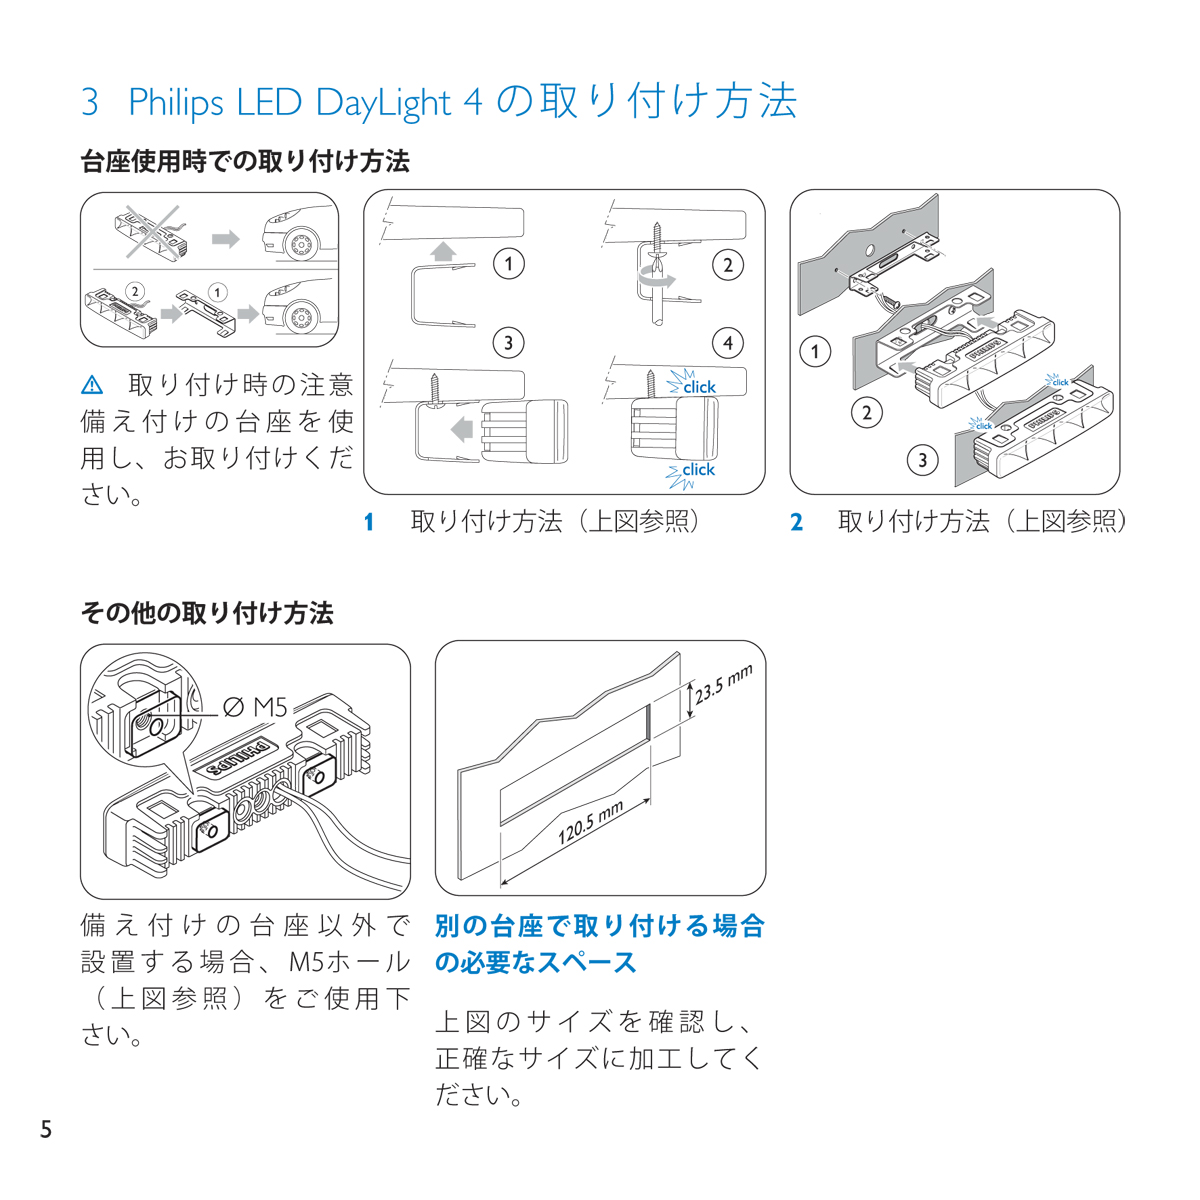 Philips LED DayLight 4 user guide - inside page